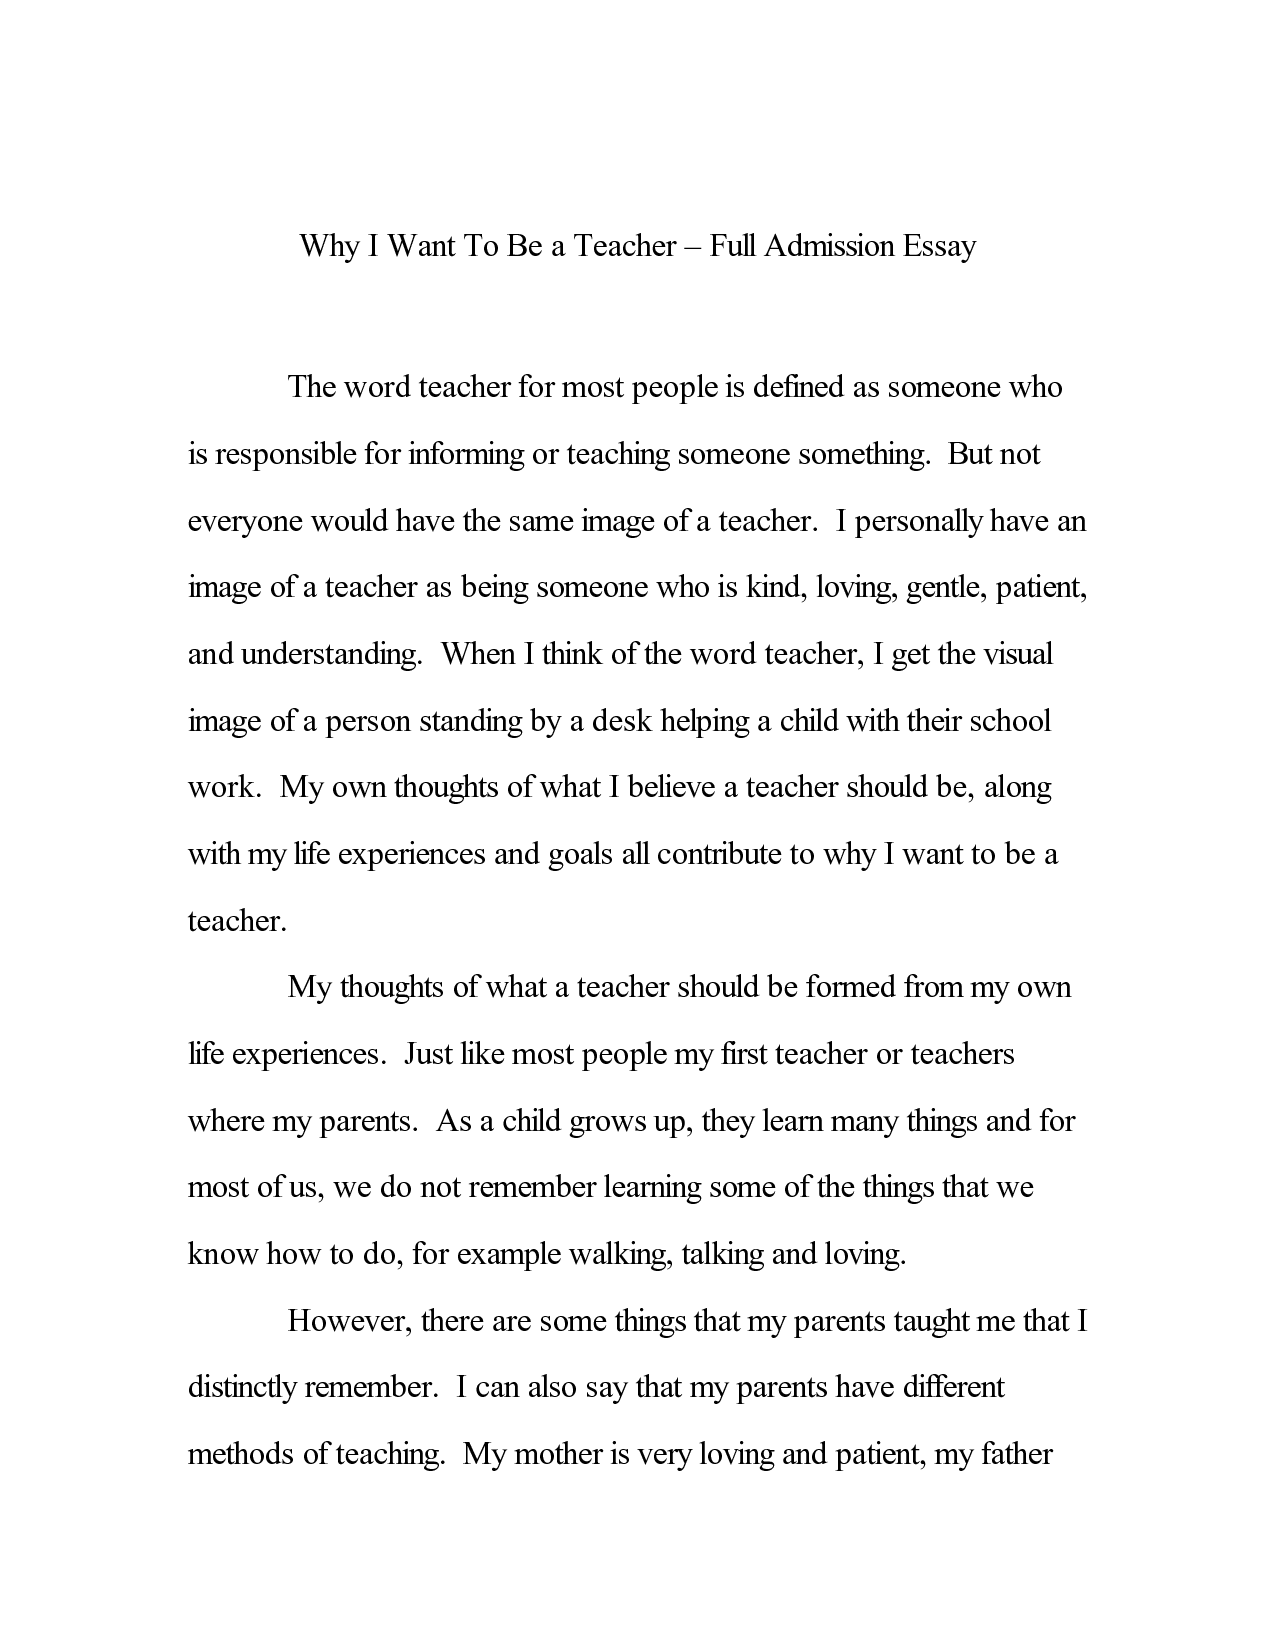 essay on what i want to be when i grow up 250 words